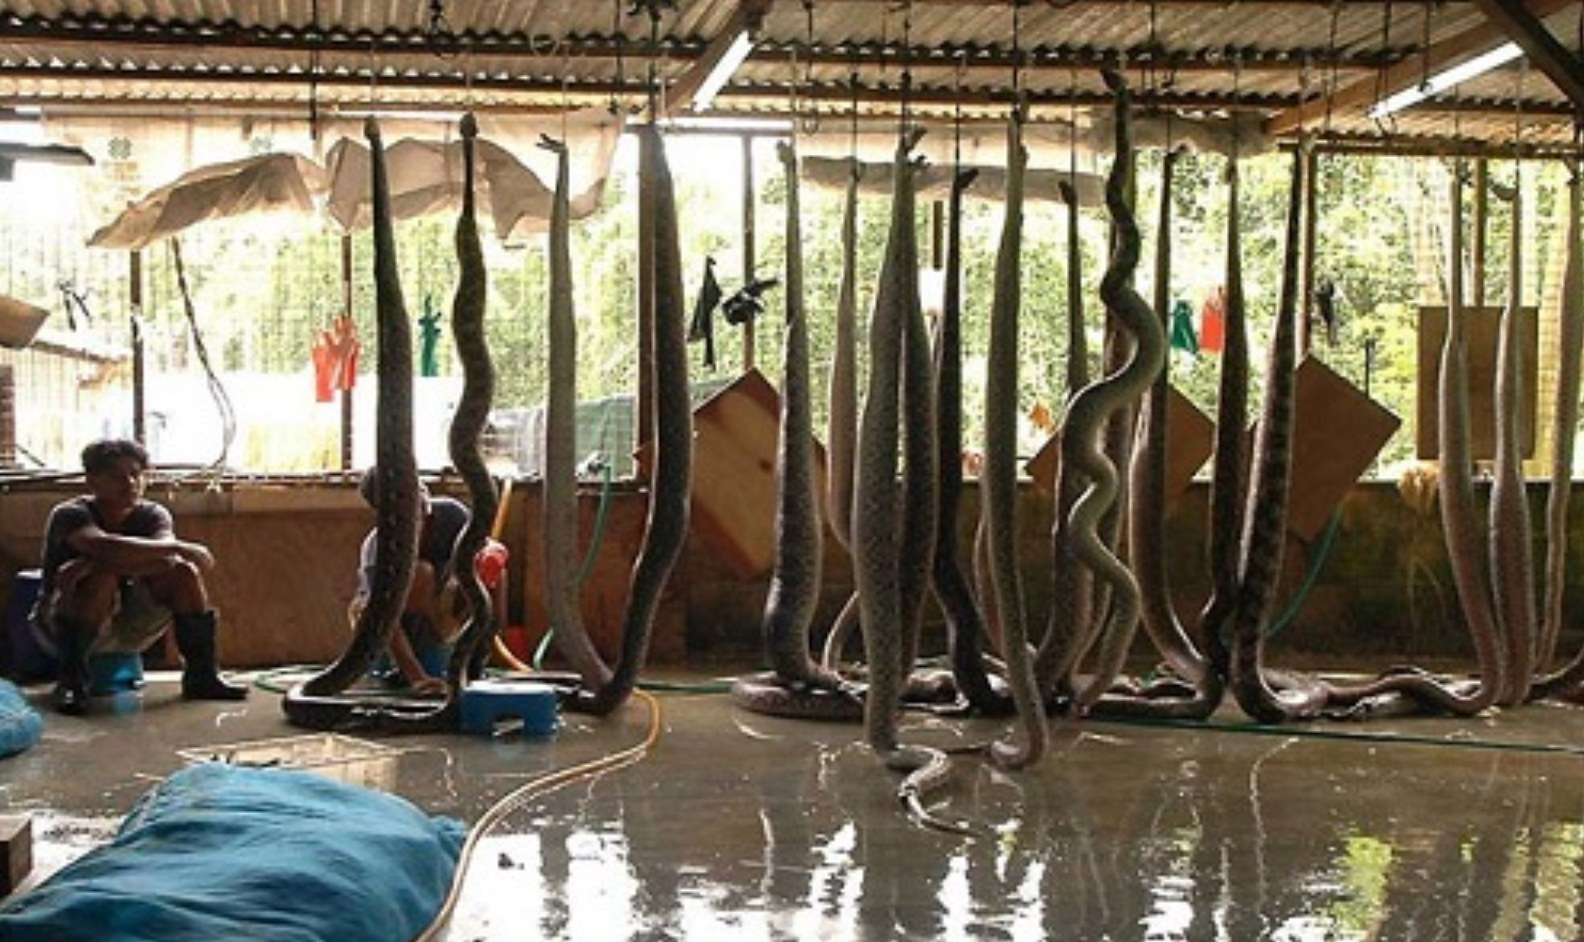 Snakes being hung for their skin